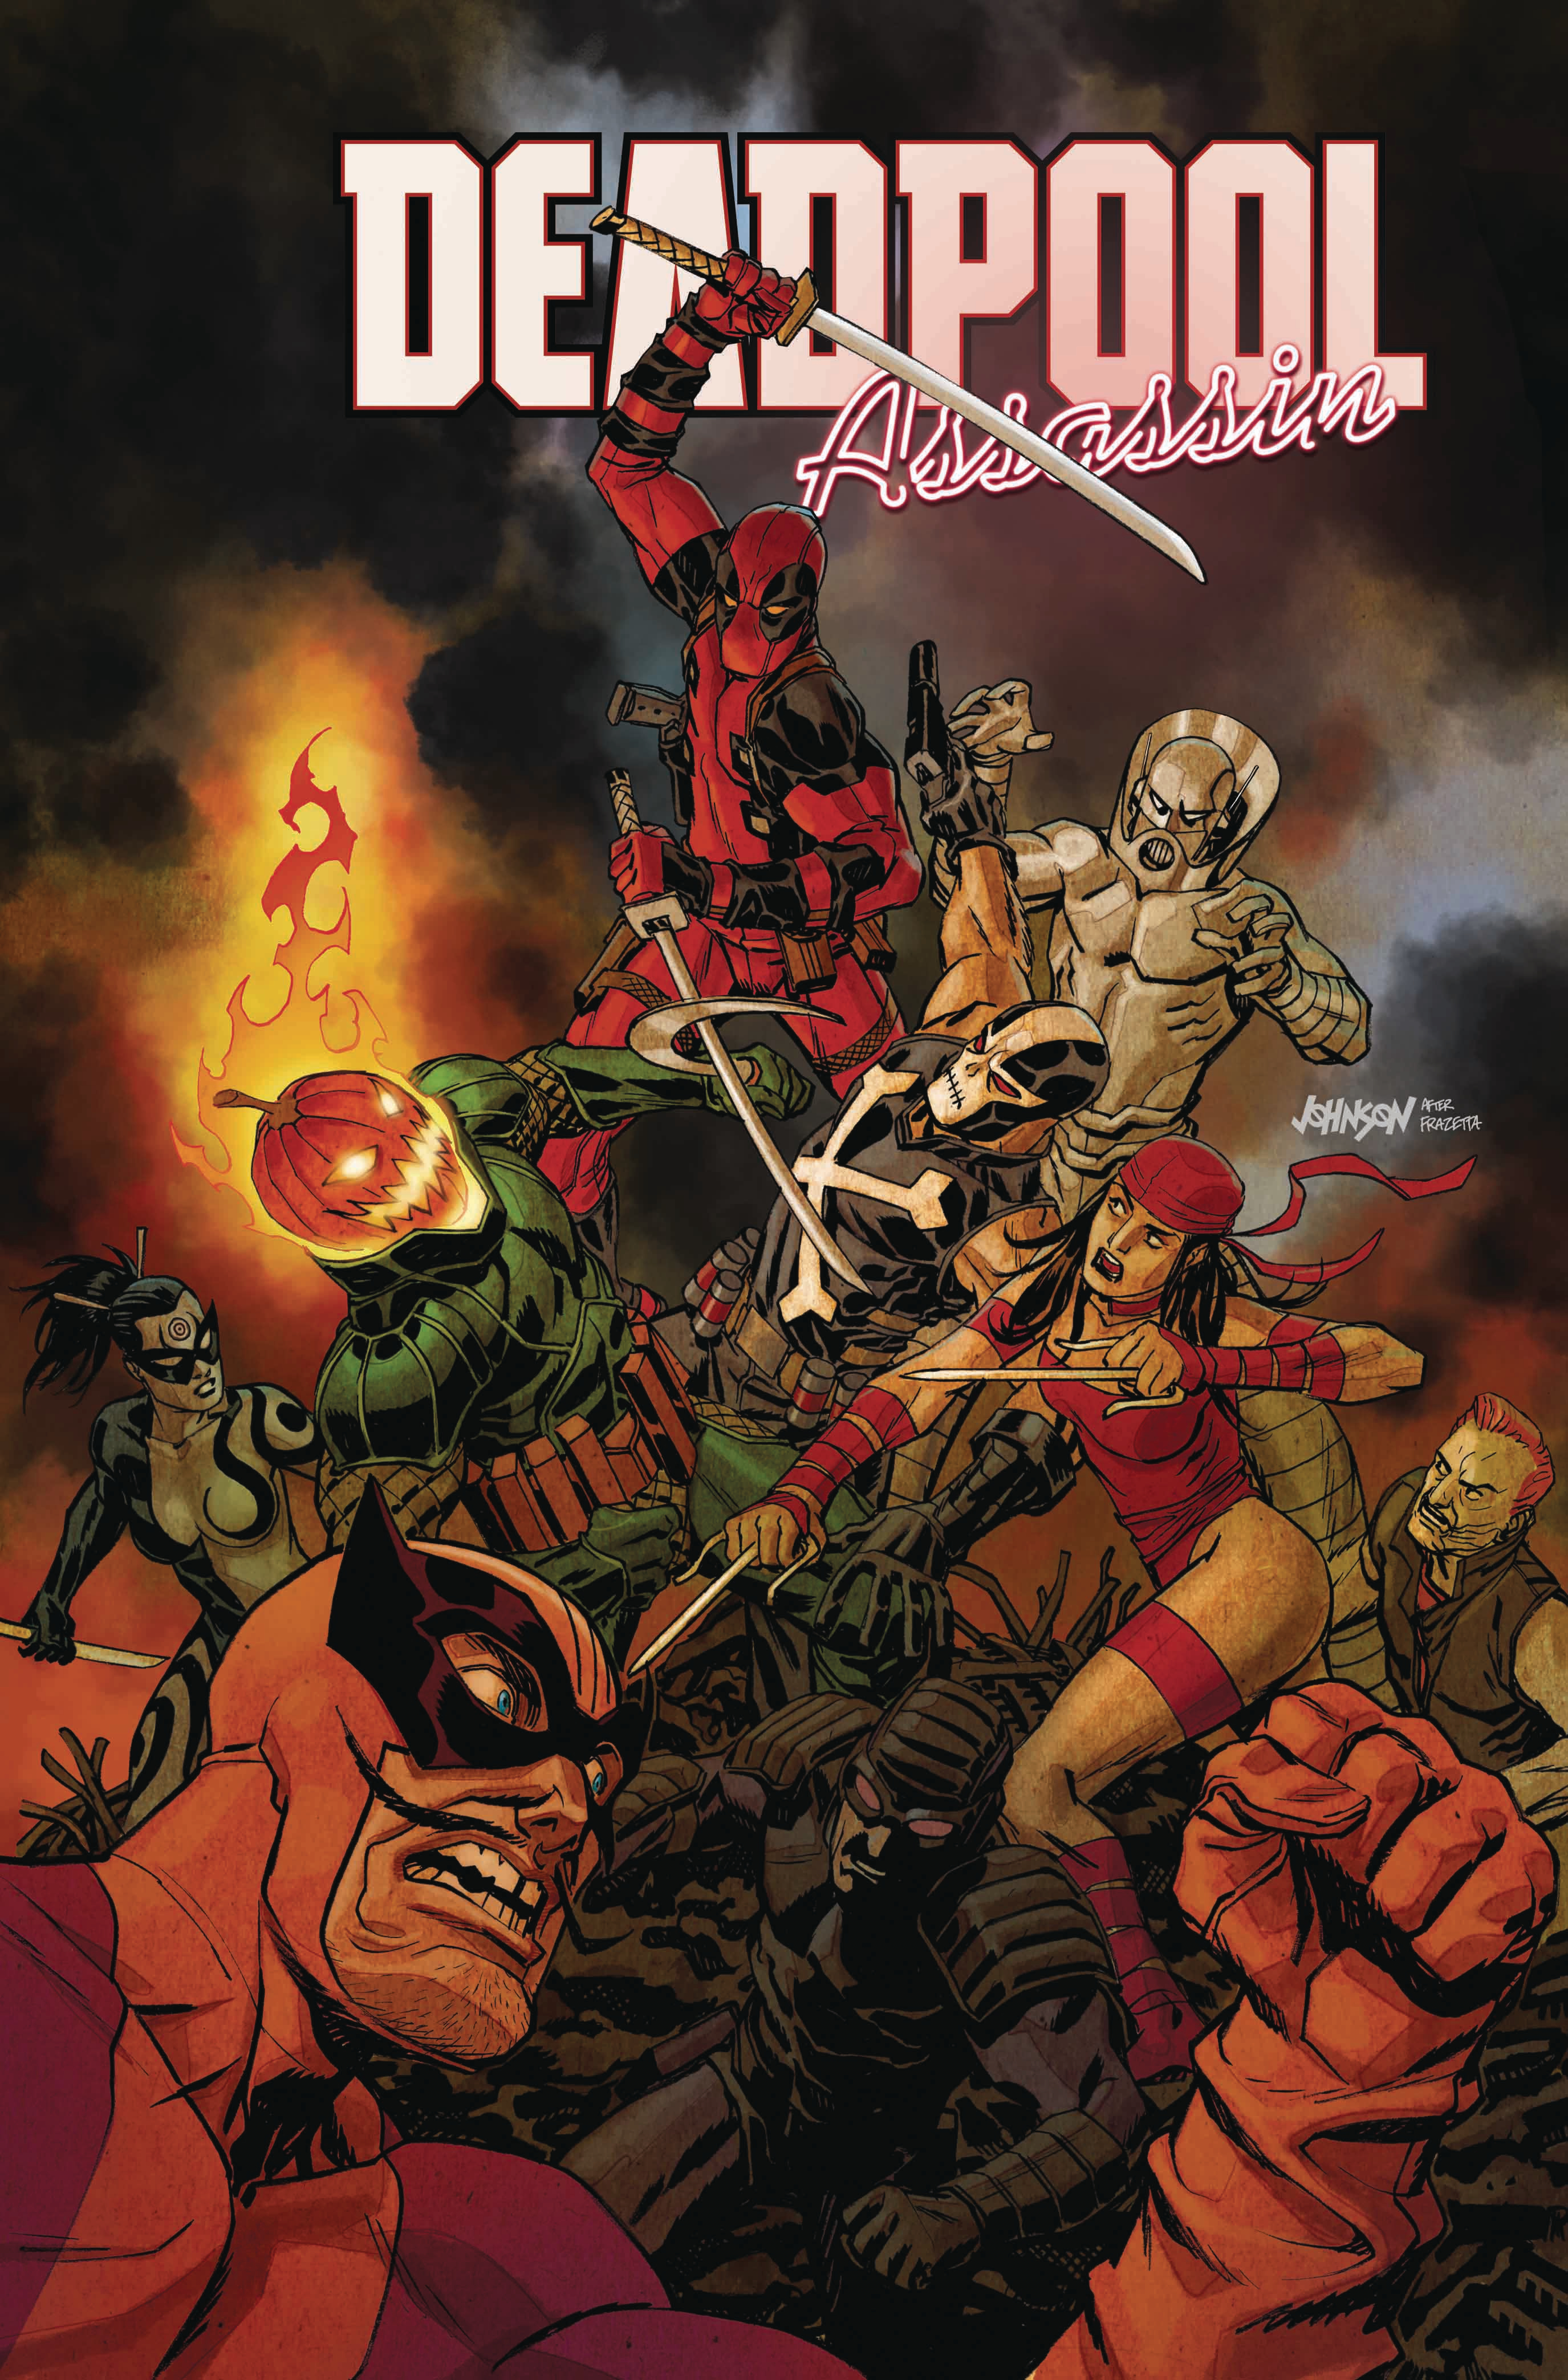 DEADPOOL ASSASSIN #5 (OF 6) JOHNSON VAR